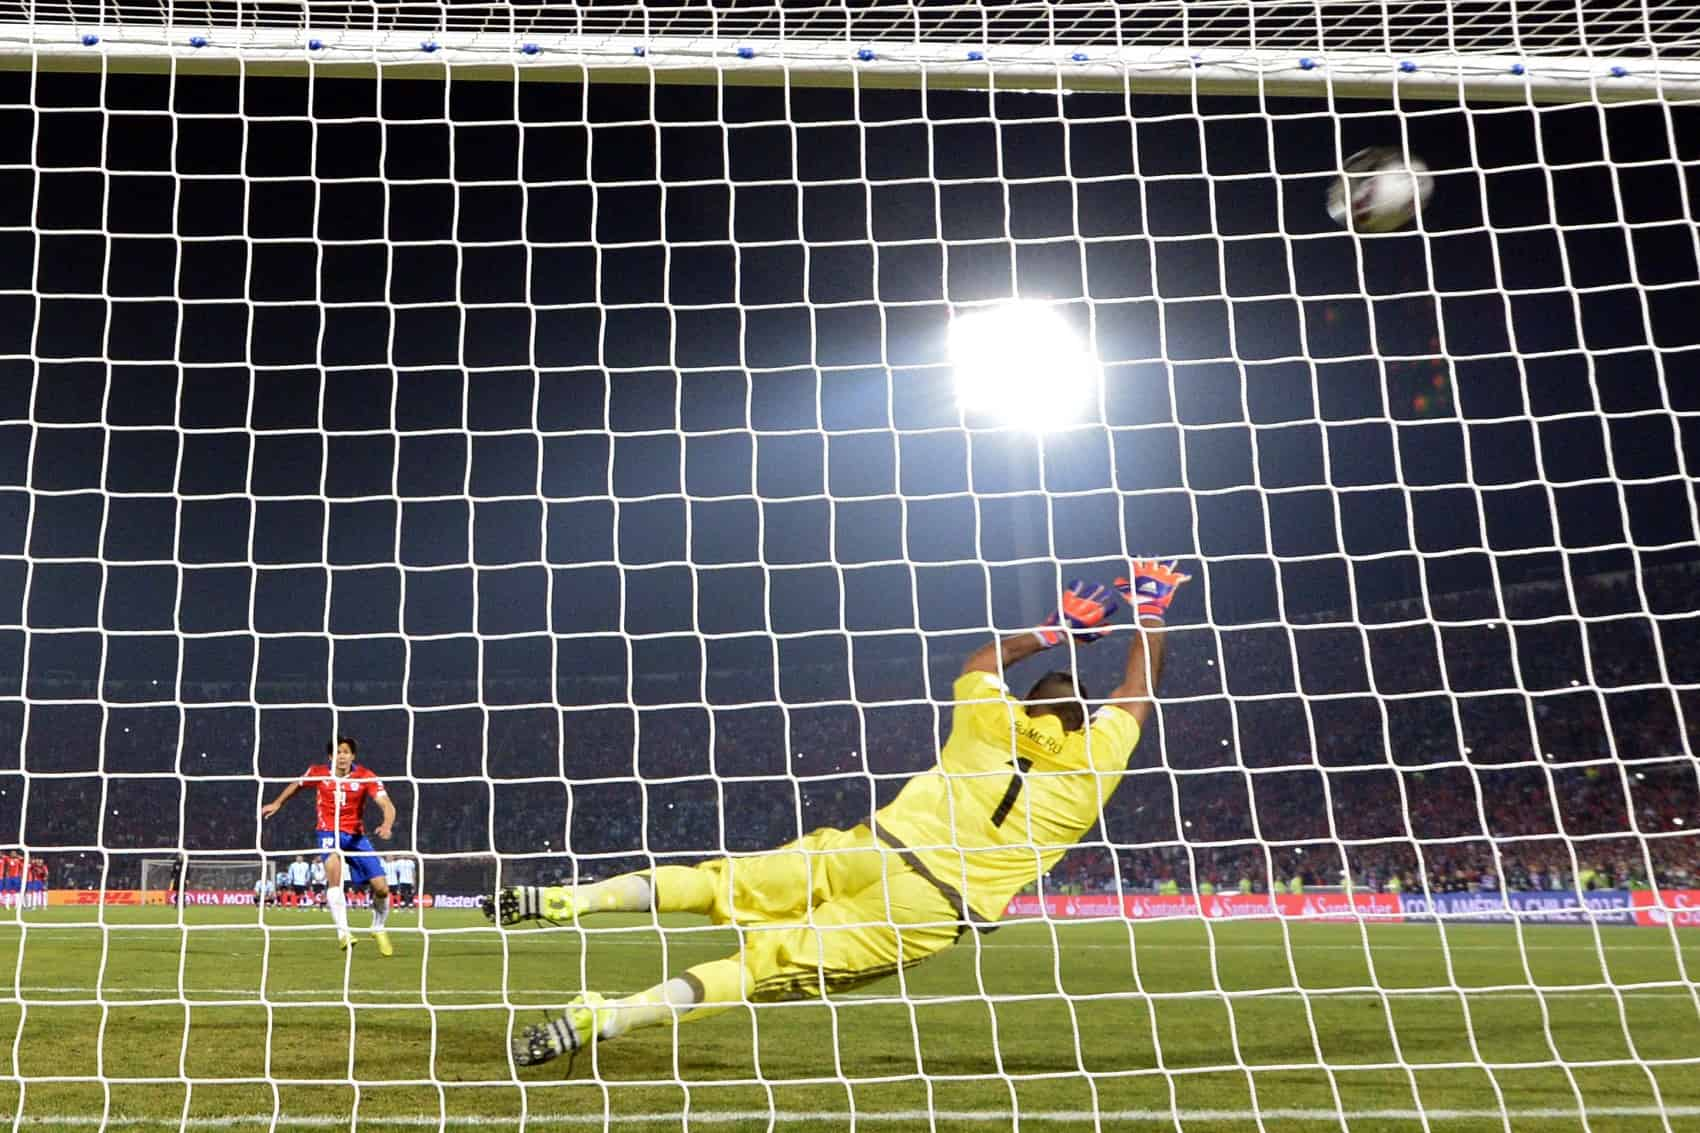 Chile's midfielder Matias Fernandez scores against Argentina during the penalty shootout of the 2015 Copa America football championship.